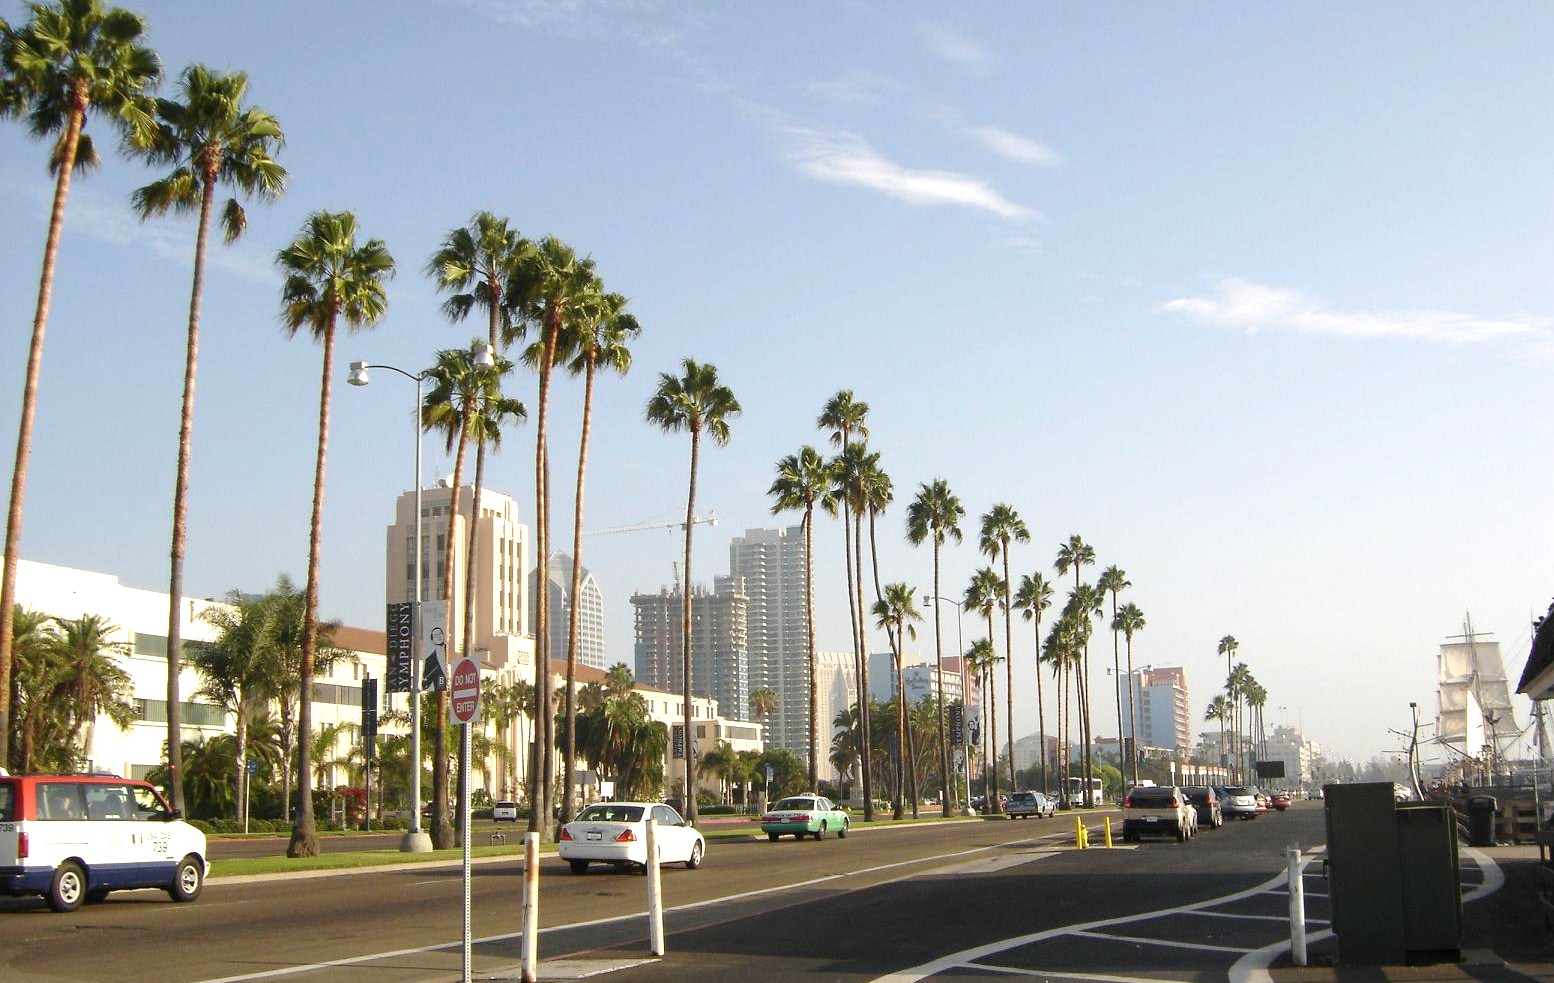 Downtown San Diego is a Top Affordable City to Visit